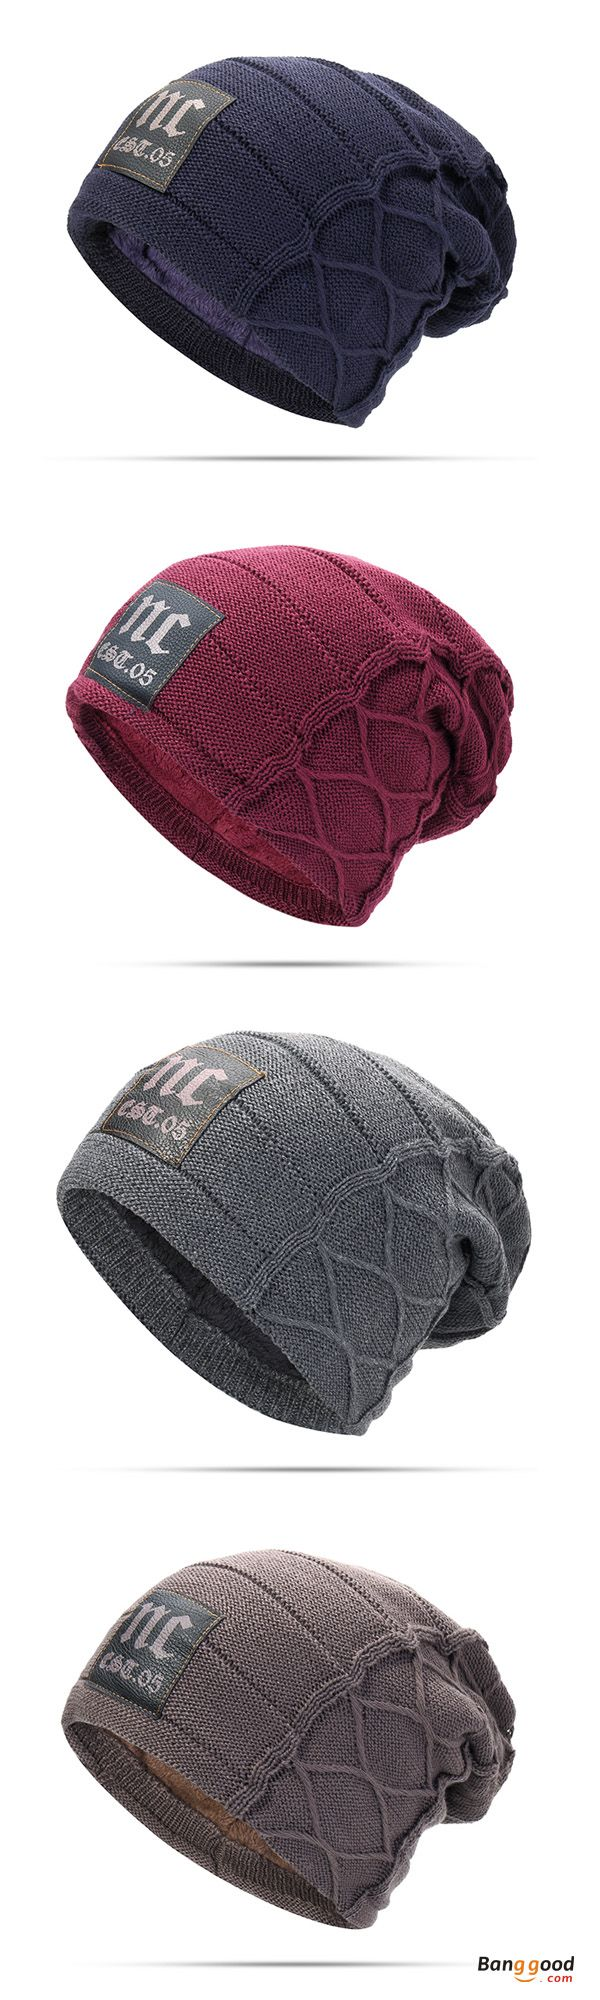 53%&Free shipping. Buy more &  Save more. Mens Cap, Plus, Velvet, Winter, Warm, Knitted Hat, Casual, Letter, Solid, Skullies, Beanie Hat. Color: Navy, Khaki, Deep Red, Black, Coffee, Dark Grey. Shop now~